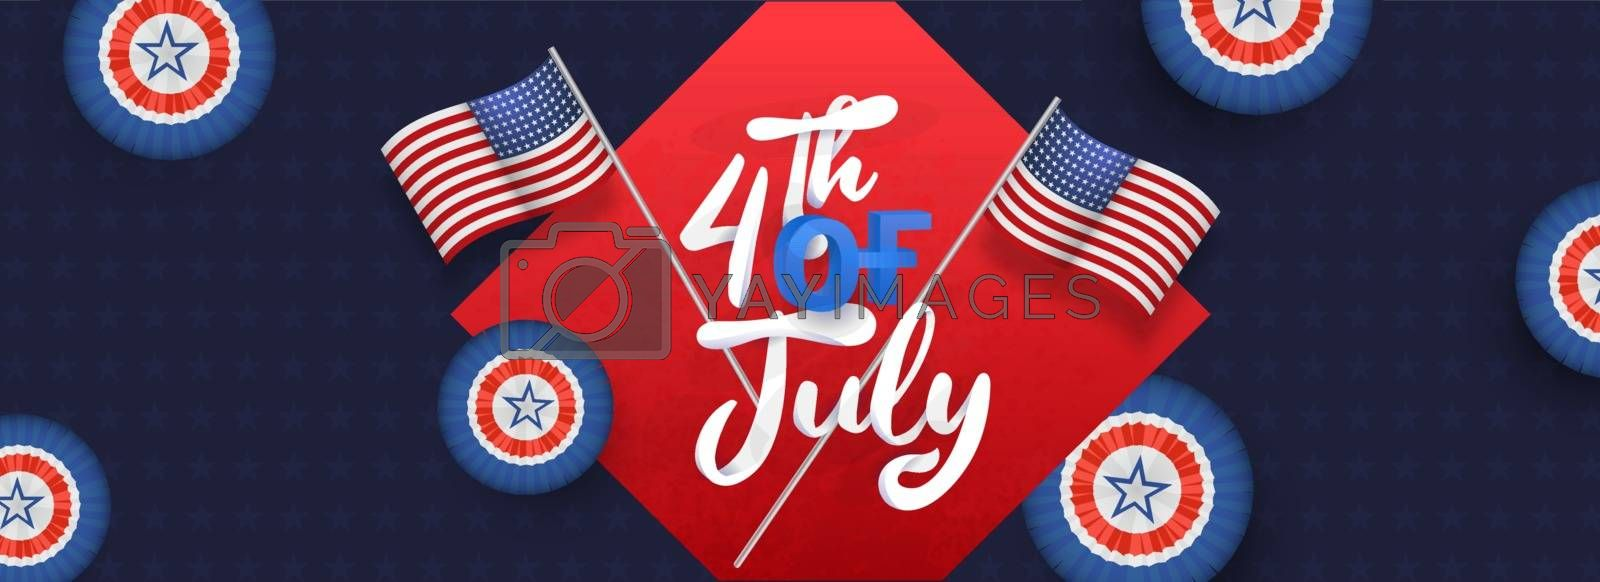 4th of july Independence day celebration header or banner design decorated with National flags and badges in USA color.